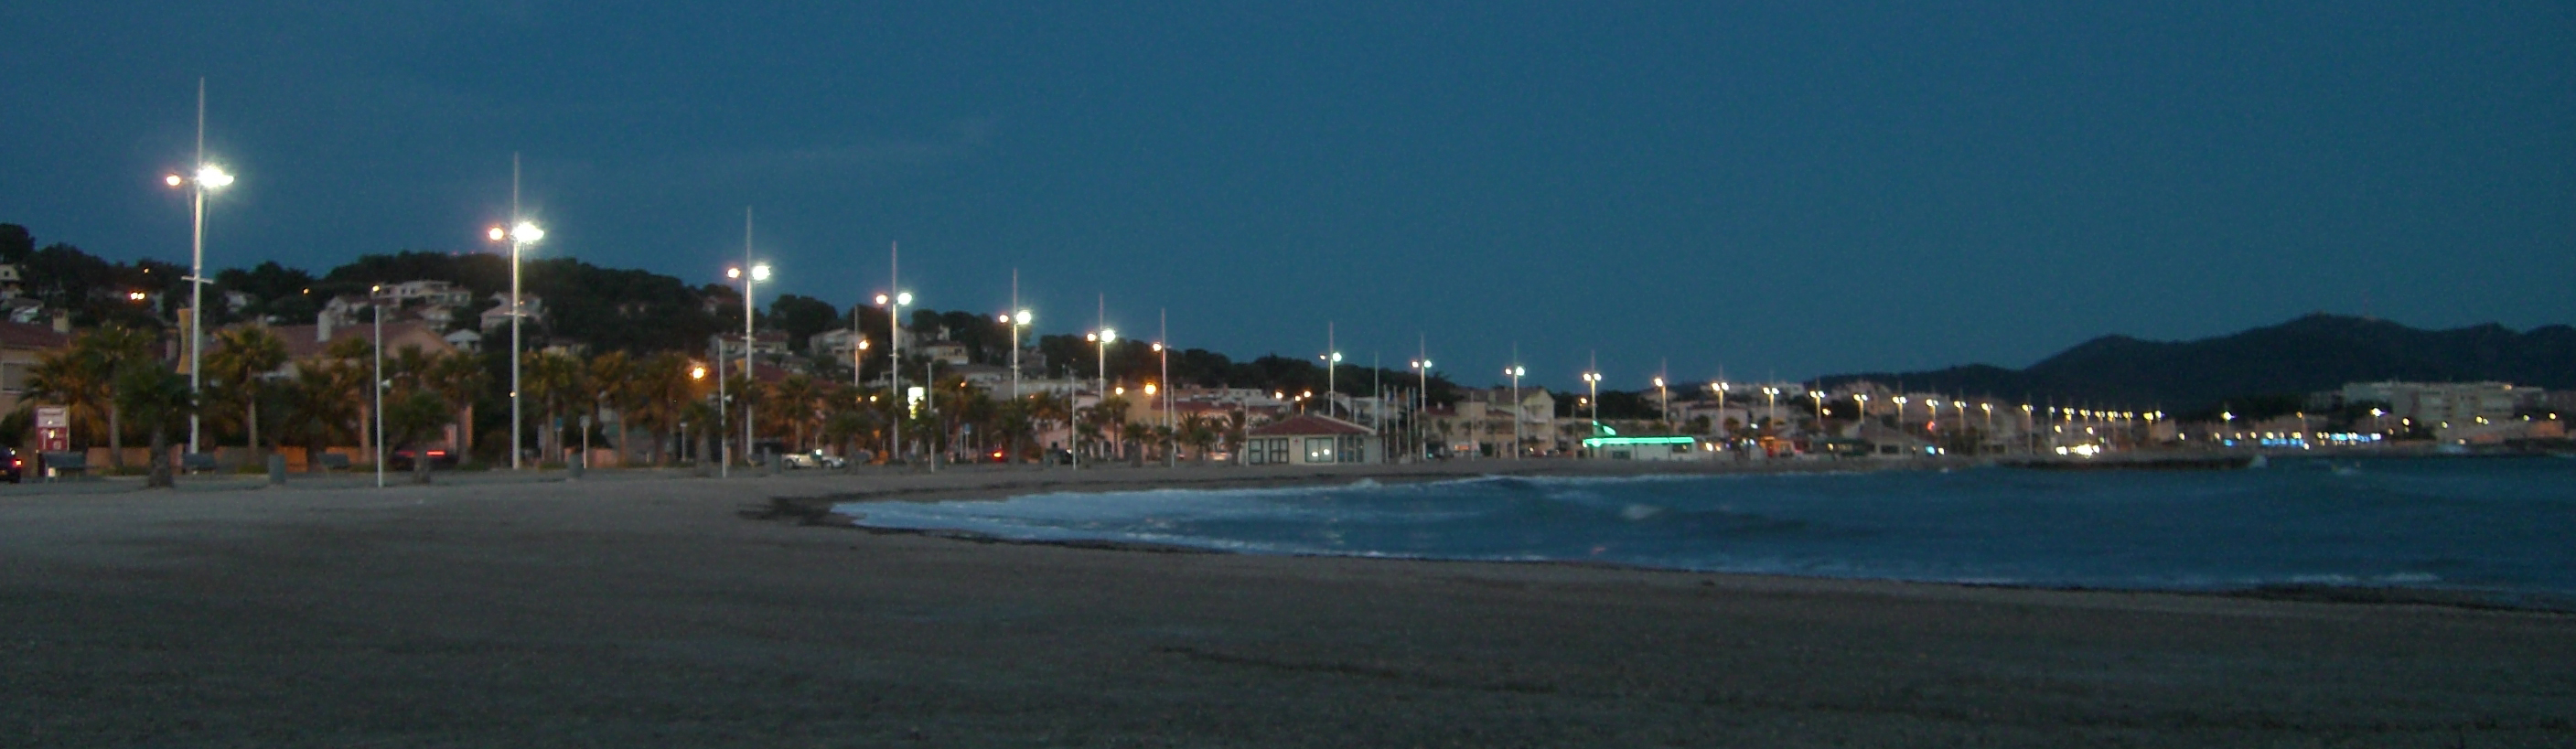 Six Fours Les Plages France  city photos gallery : Description Six fours les plages evening